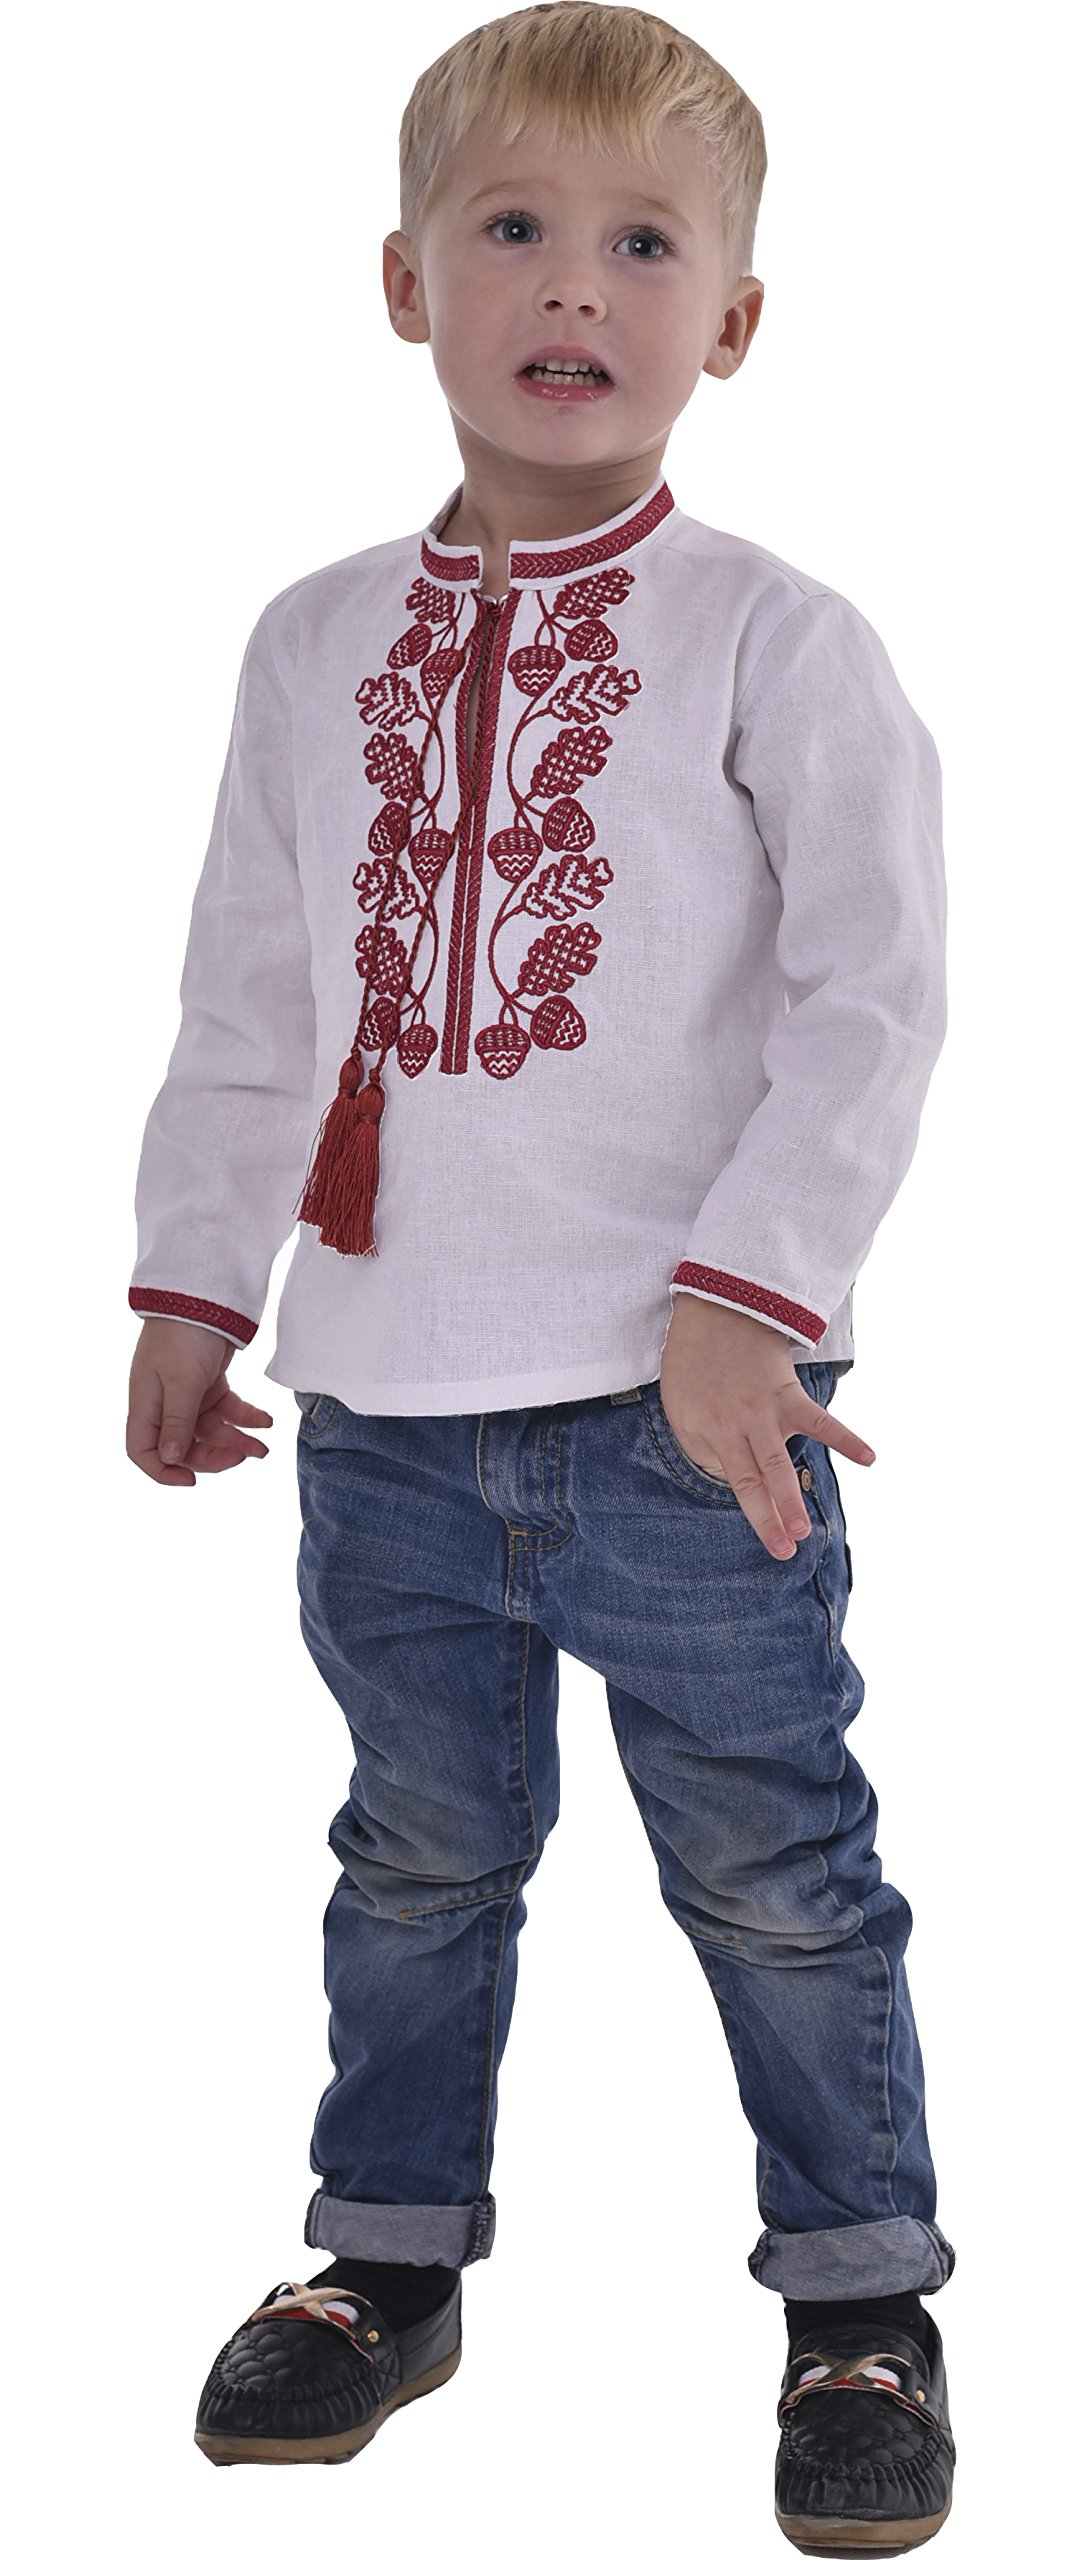 2kolyory Boys Shirts With Embroidery. Ukrainian Vyshyvanka. Children's Traditional Ukrainian Shirts With Collar For Boys. (5.5-6 Years)